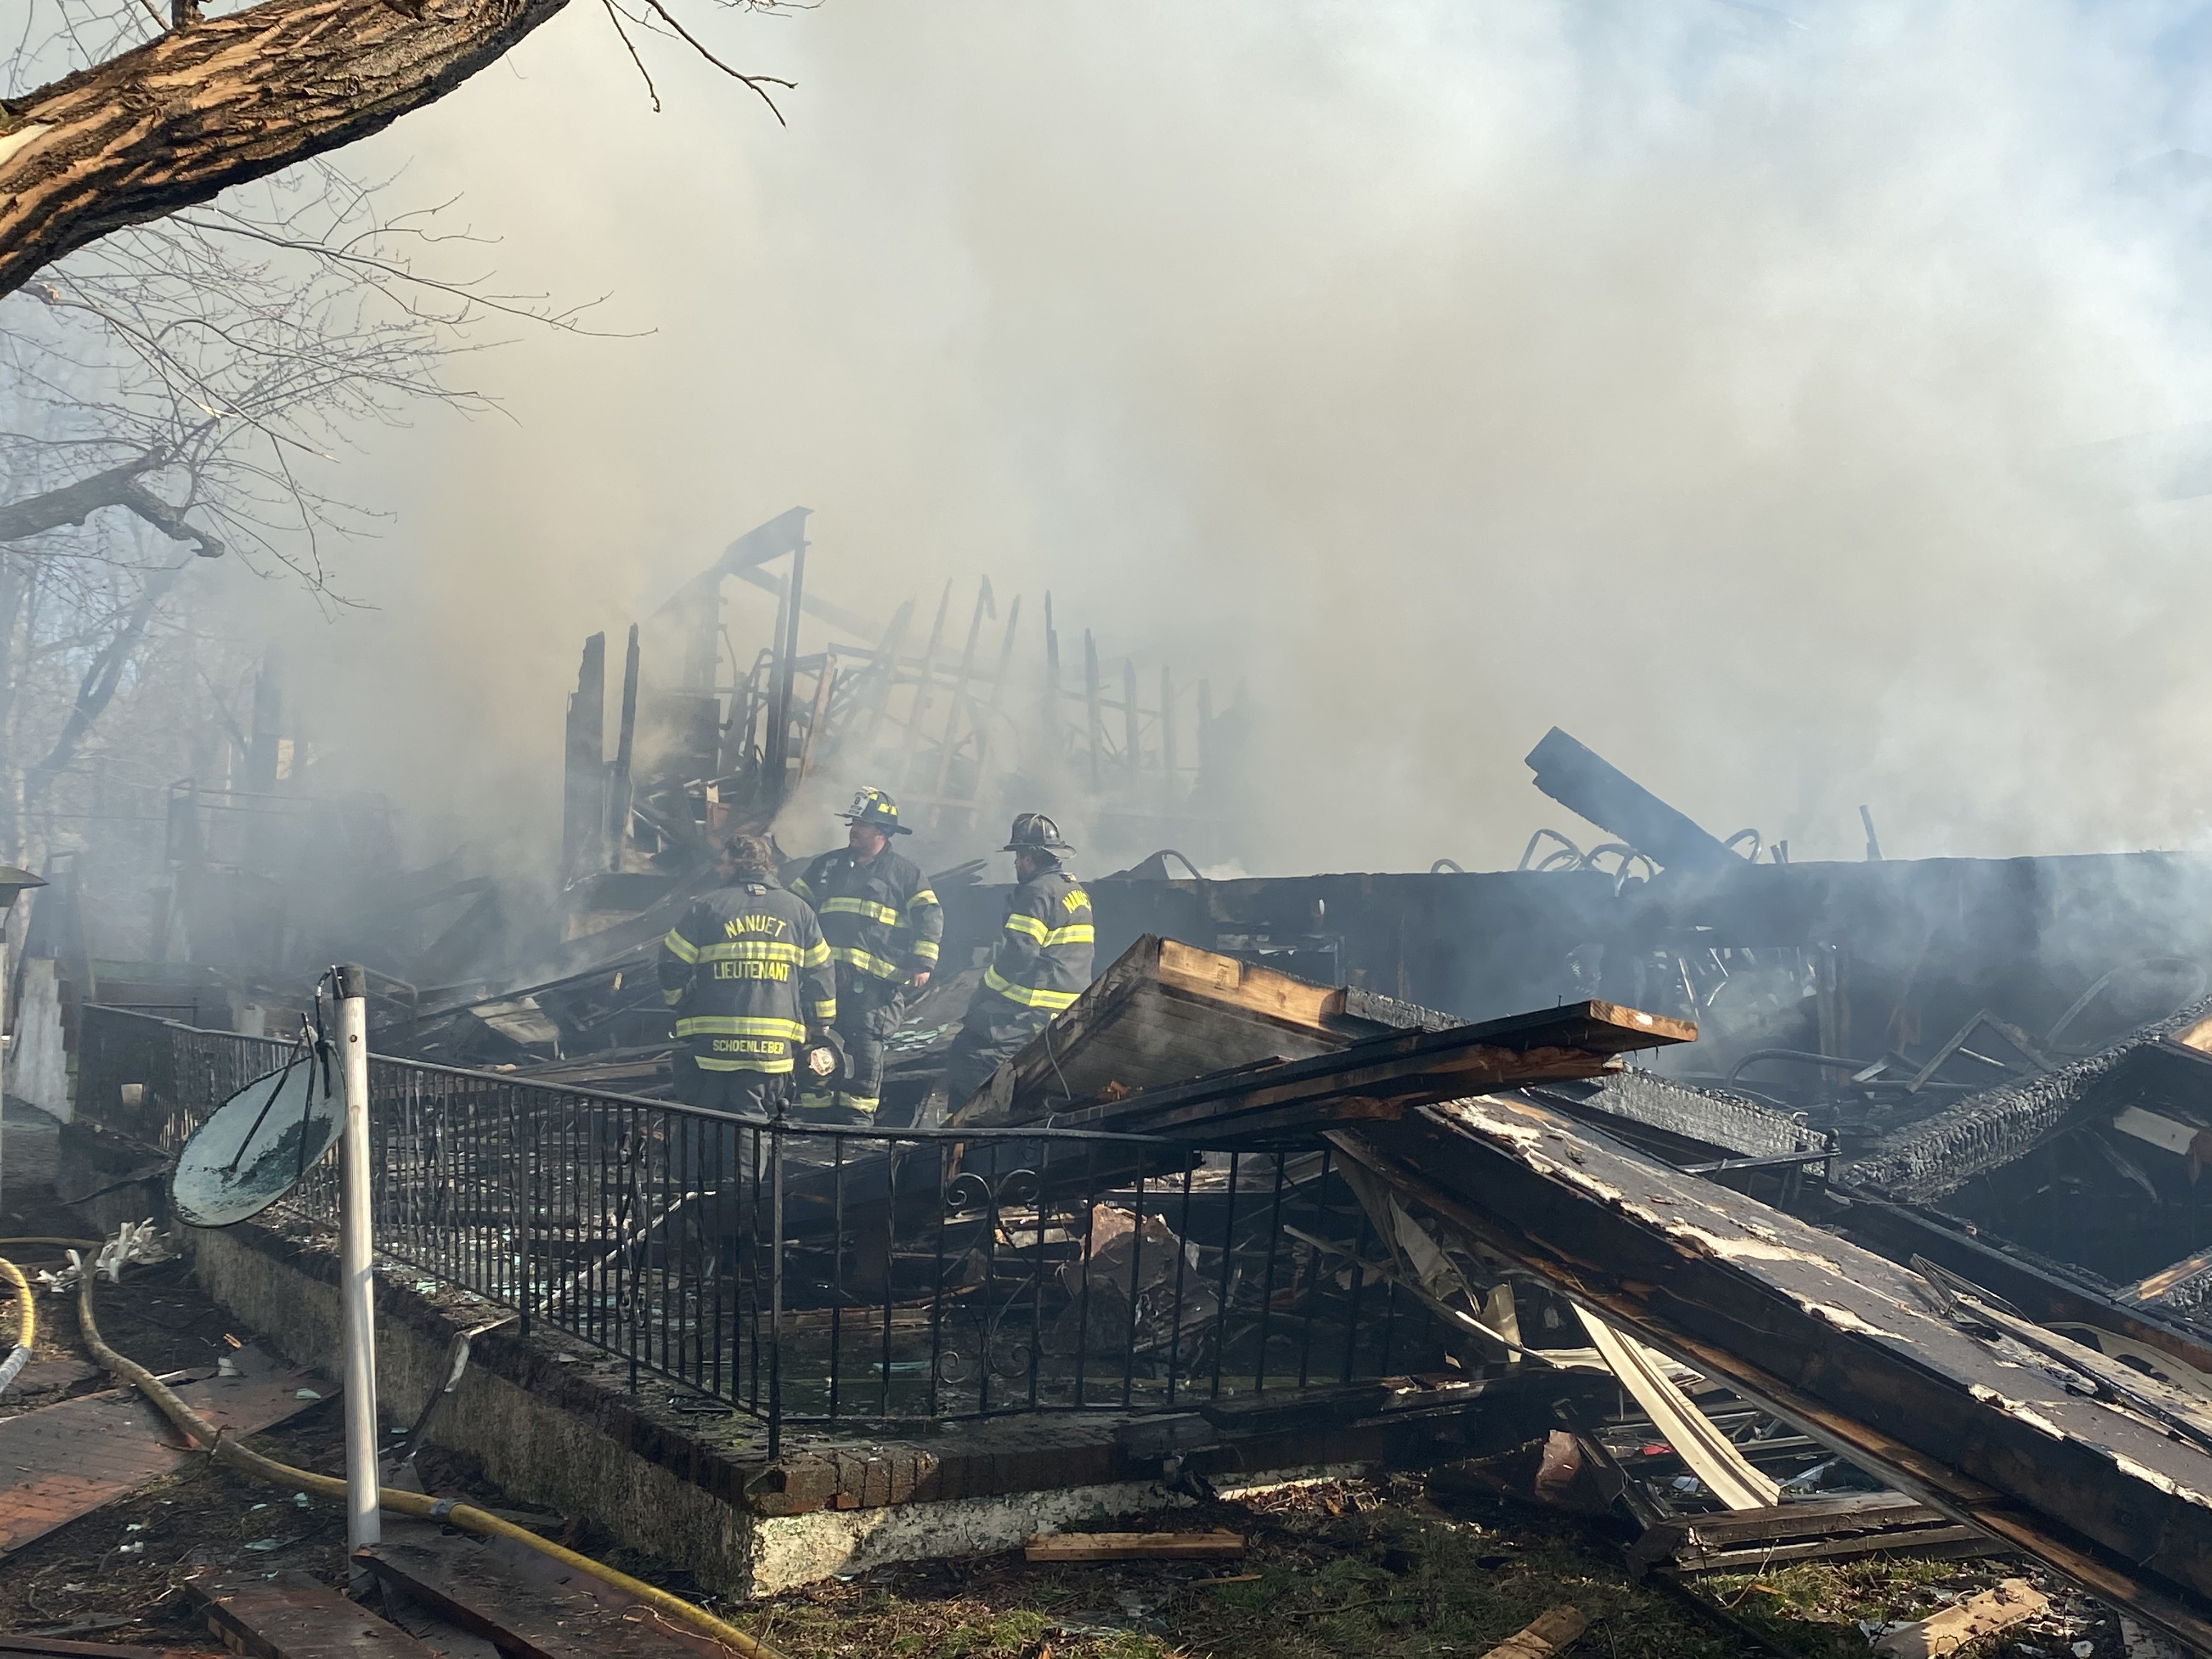 Fire at Spring Valley Assisted Living Facility: One Fatality, Firefighter Missing, Many Hospitalized